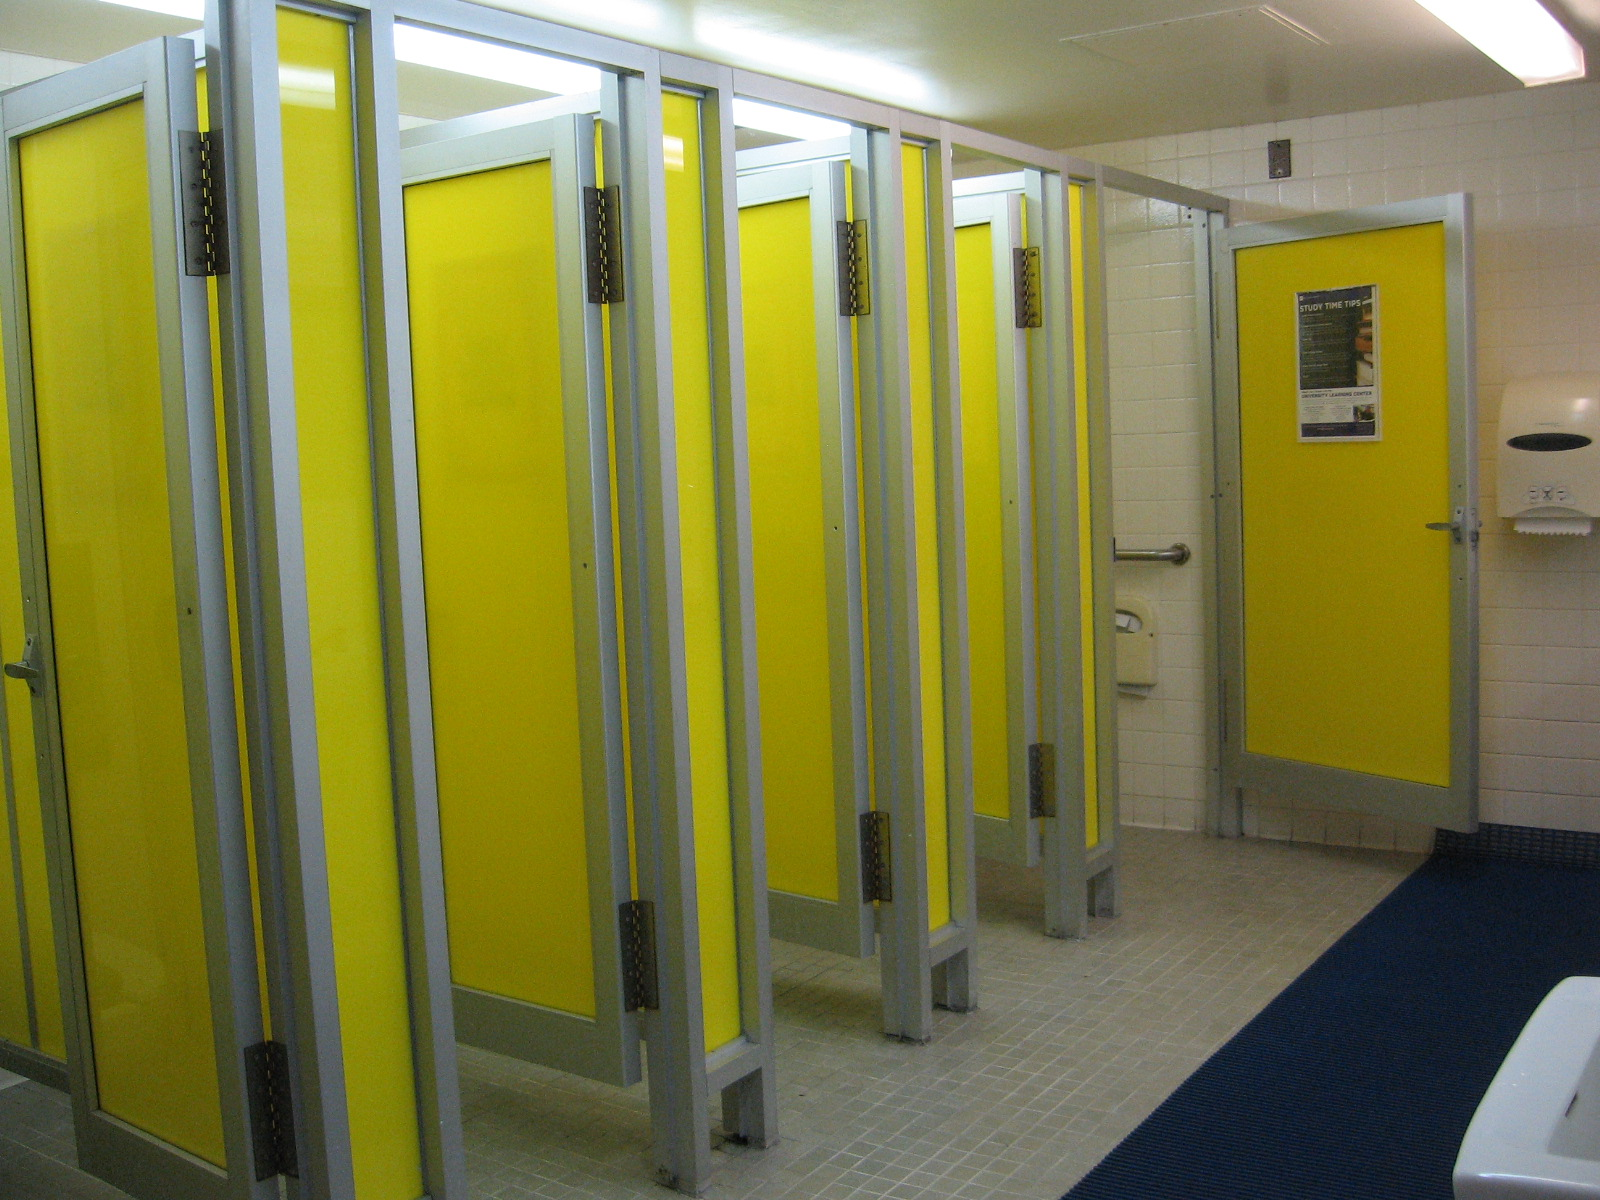 School Restroom Stalls Bright Yellow Bathroom Stalls